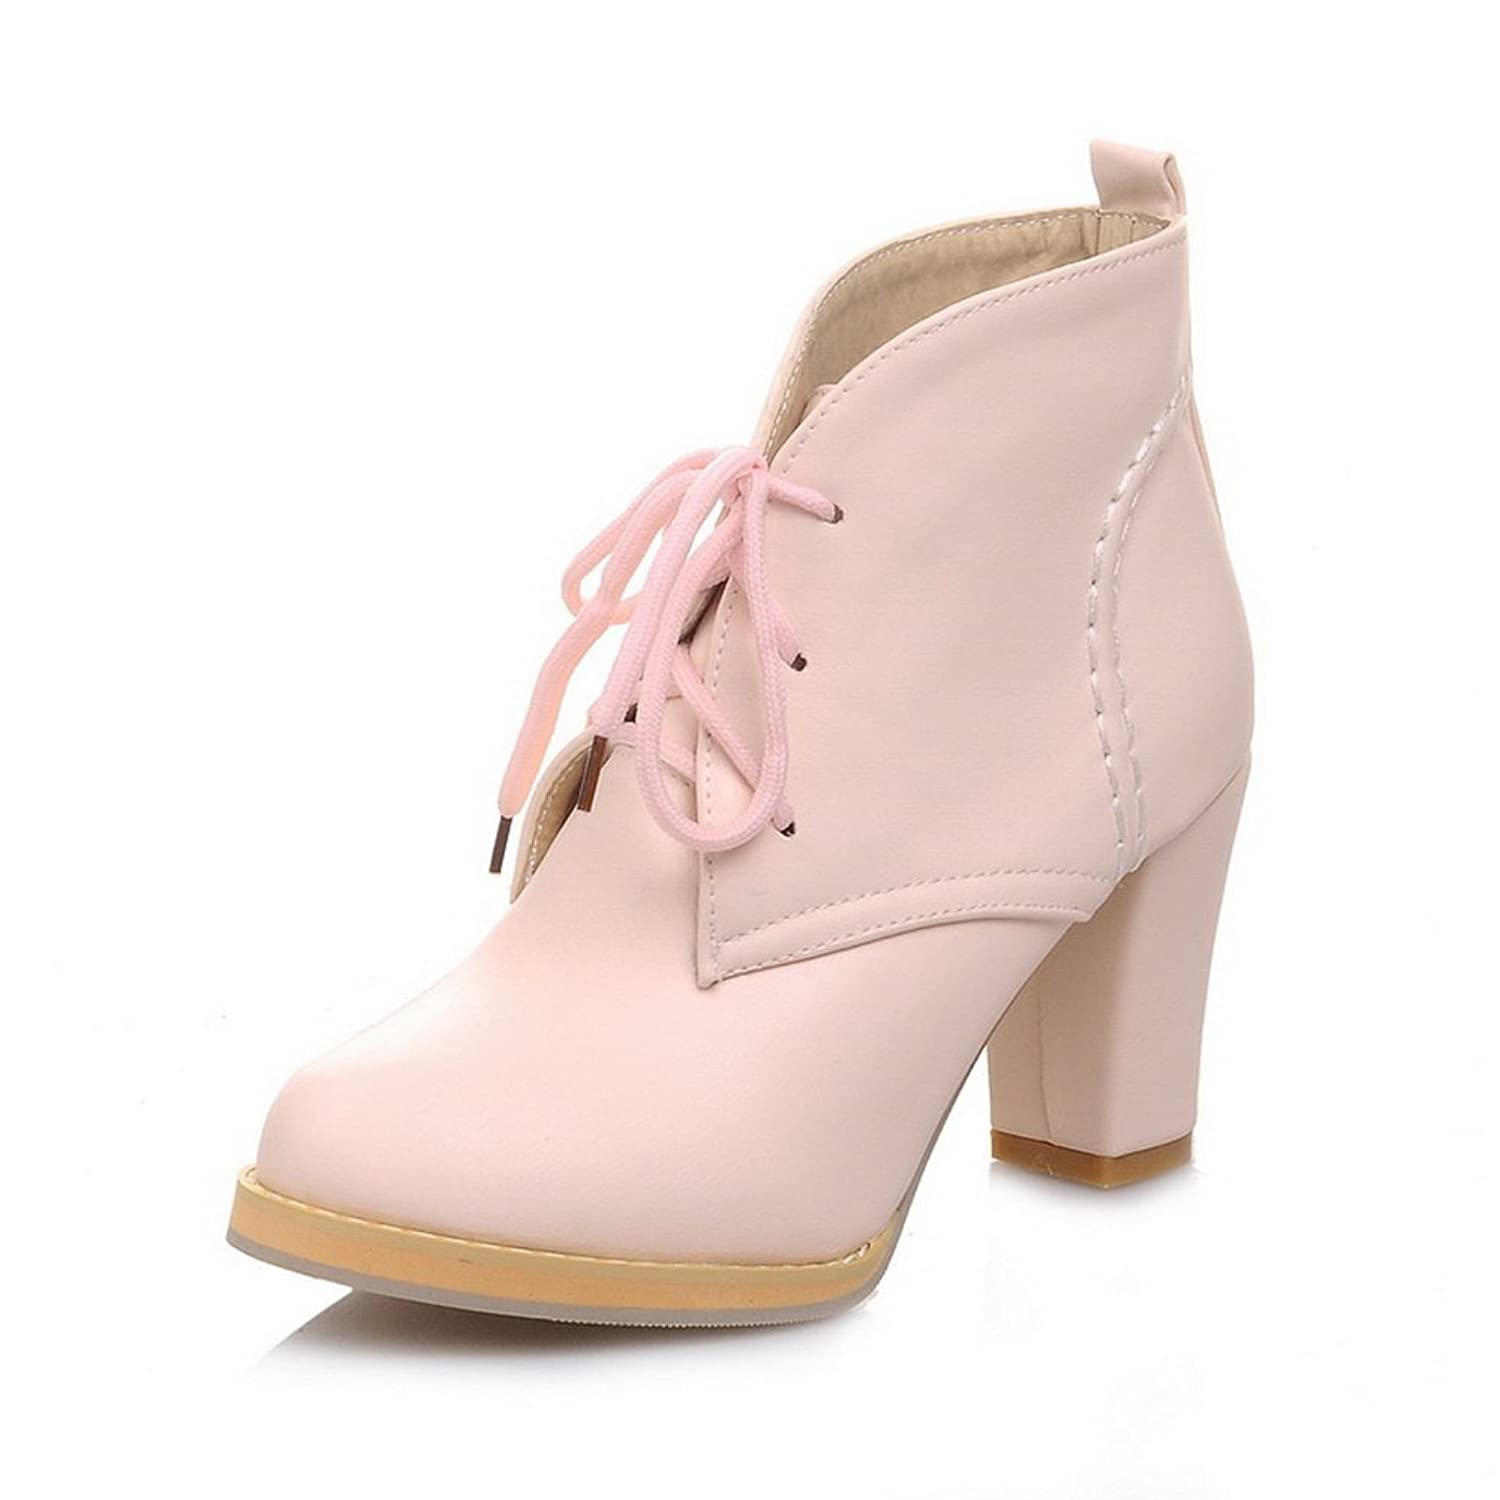 1TO9 Girls Platform Wheeled Heel Shoes Fashion Cone-Shape Heel Soft Material Boots